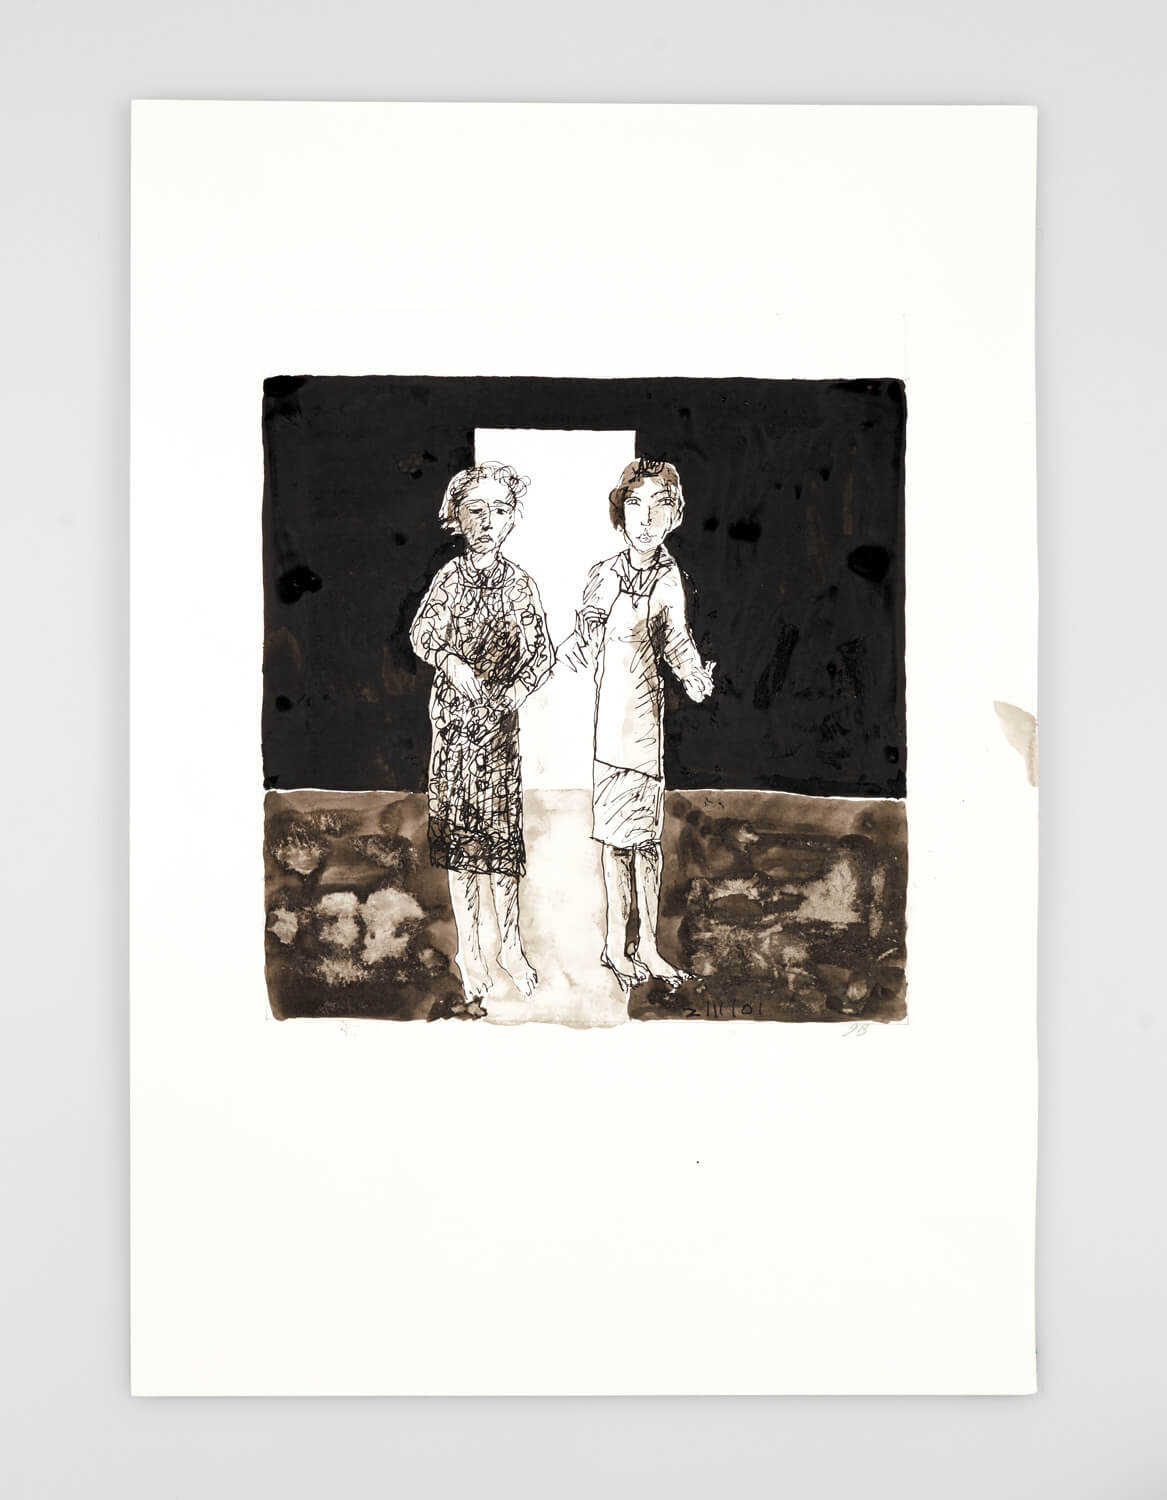 JB019 - Two Women - Being dressed - 2001 - 50 x 35 cm - Indian ink and wash on paper